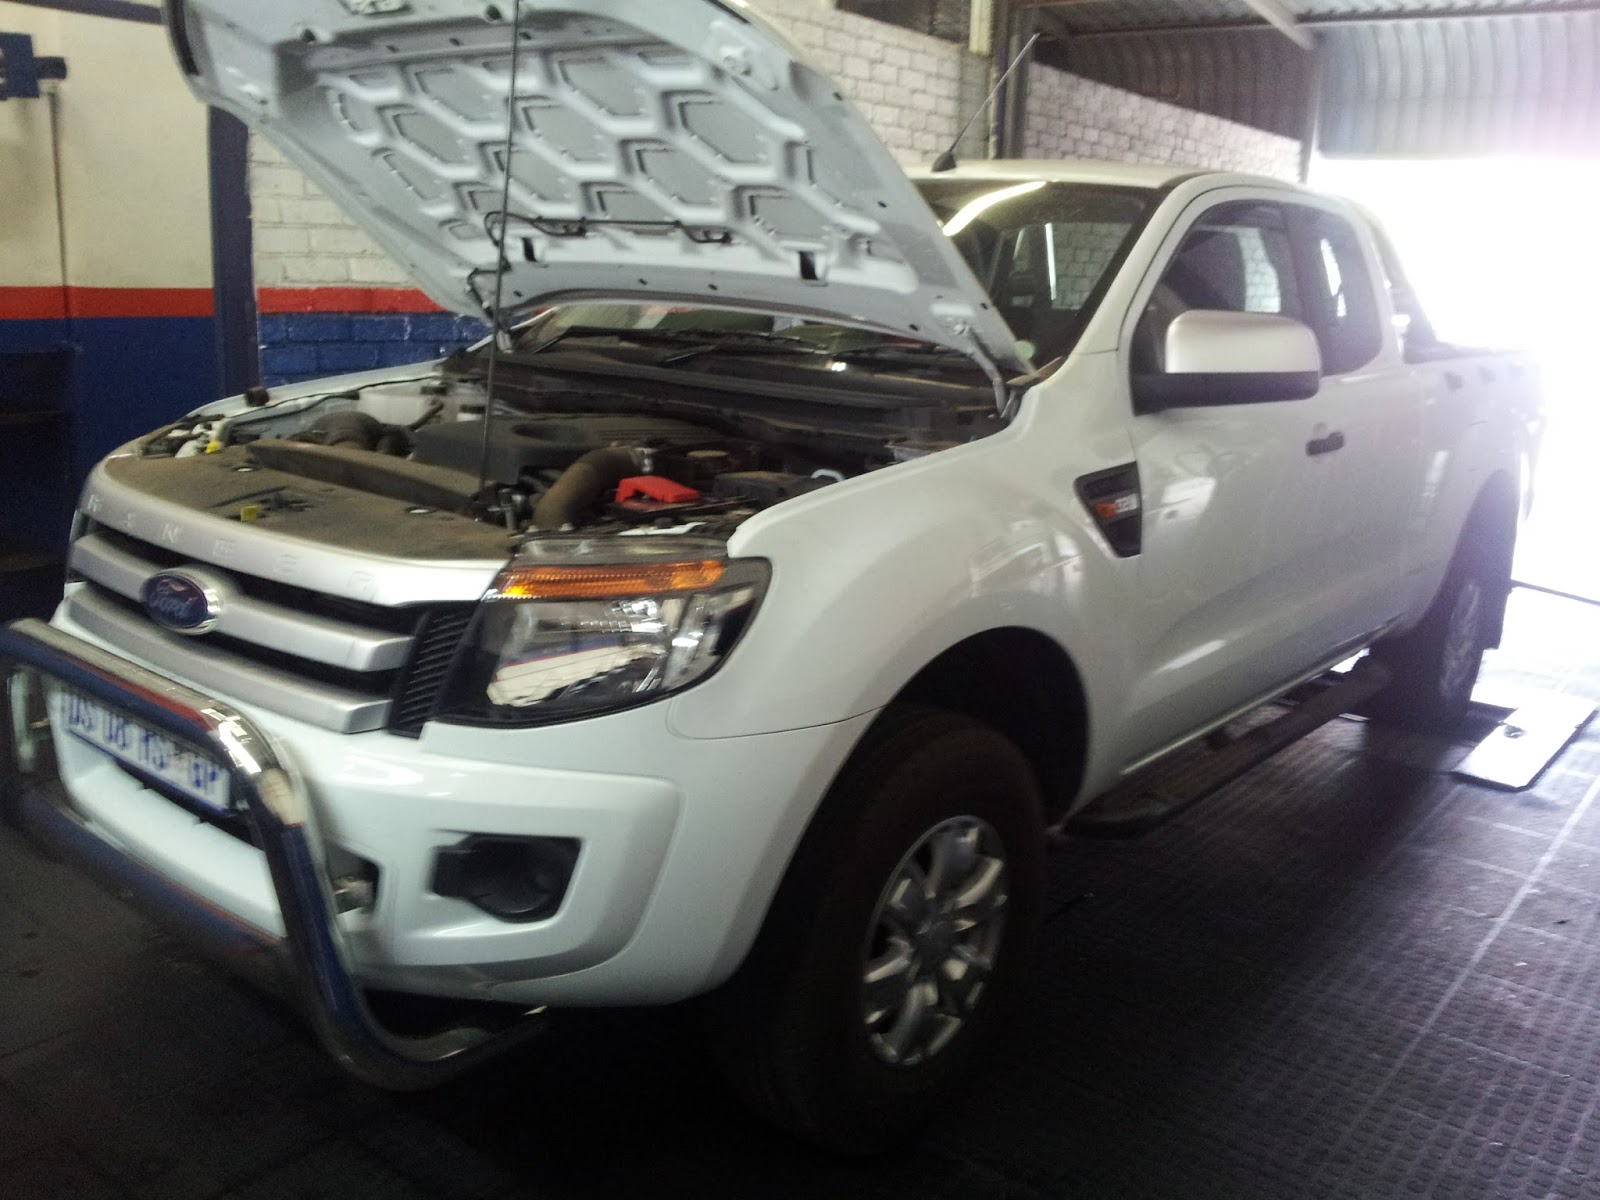 Ford Ranger 3.2 TDCI (4x4) (6 Speed Manual) Performance Chip Tuning - ECU  Remapping (+35.6kw & 103nm)